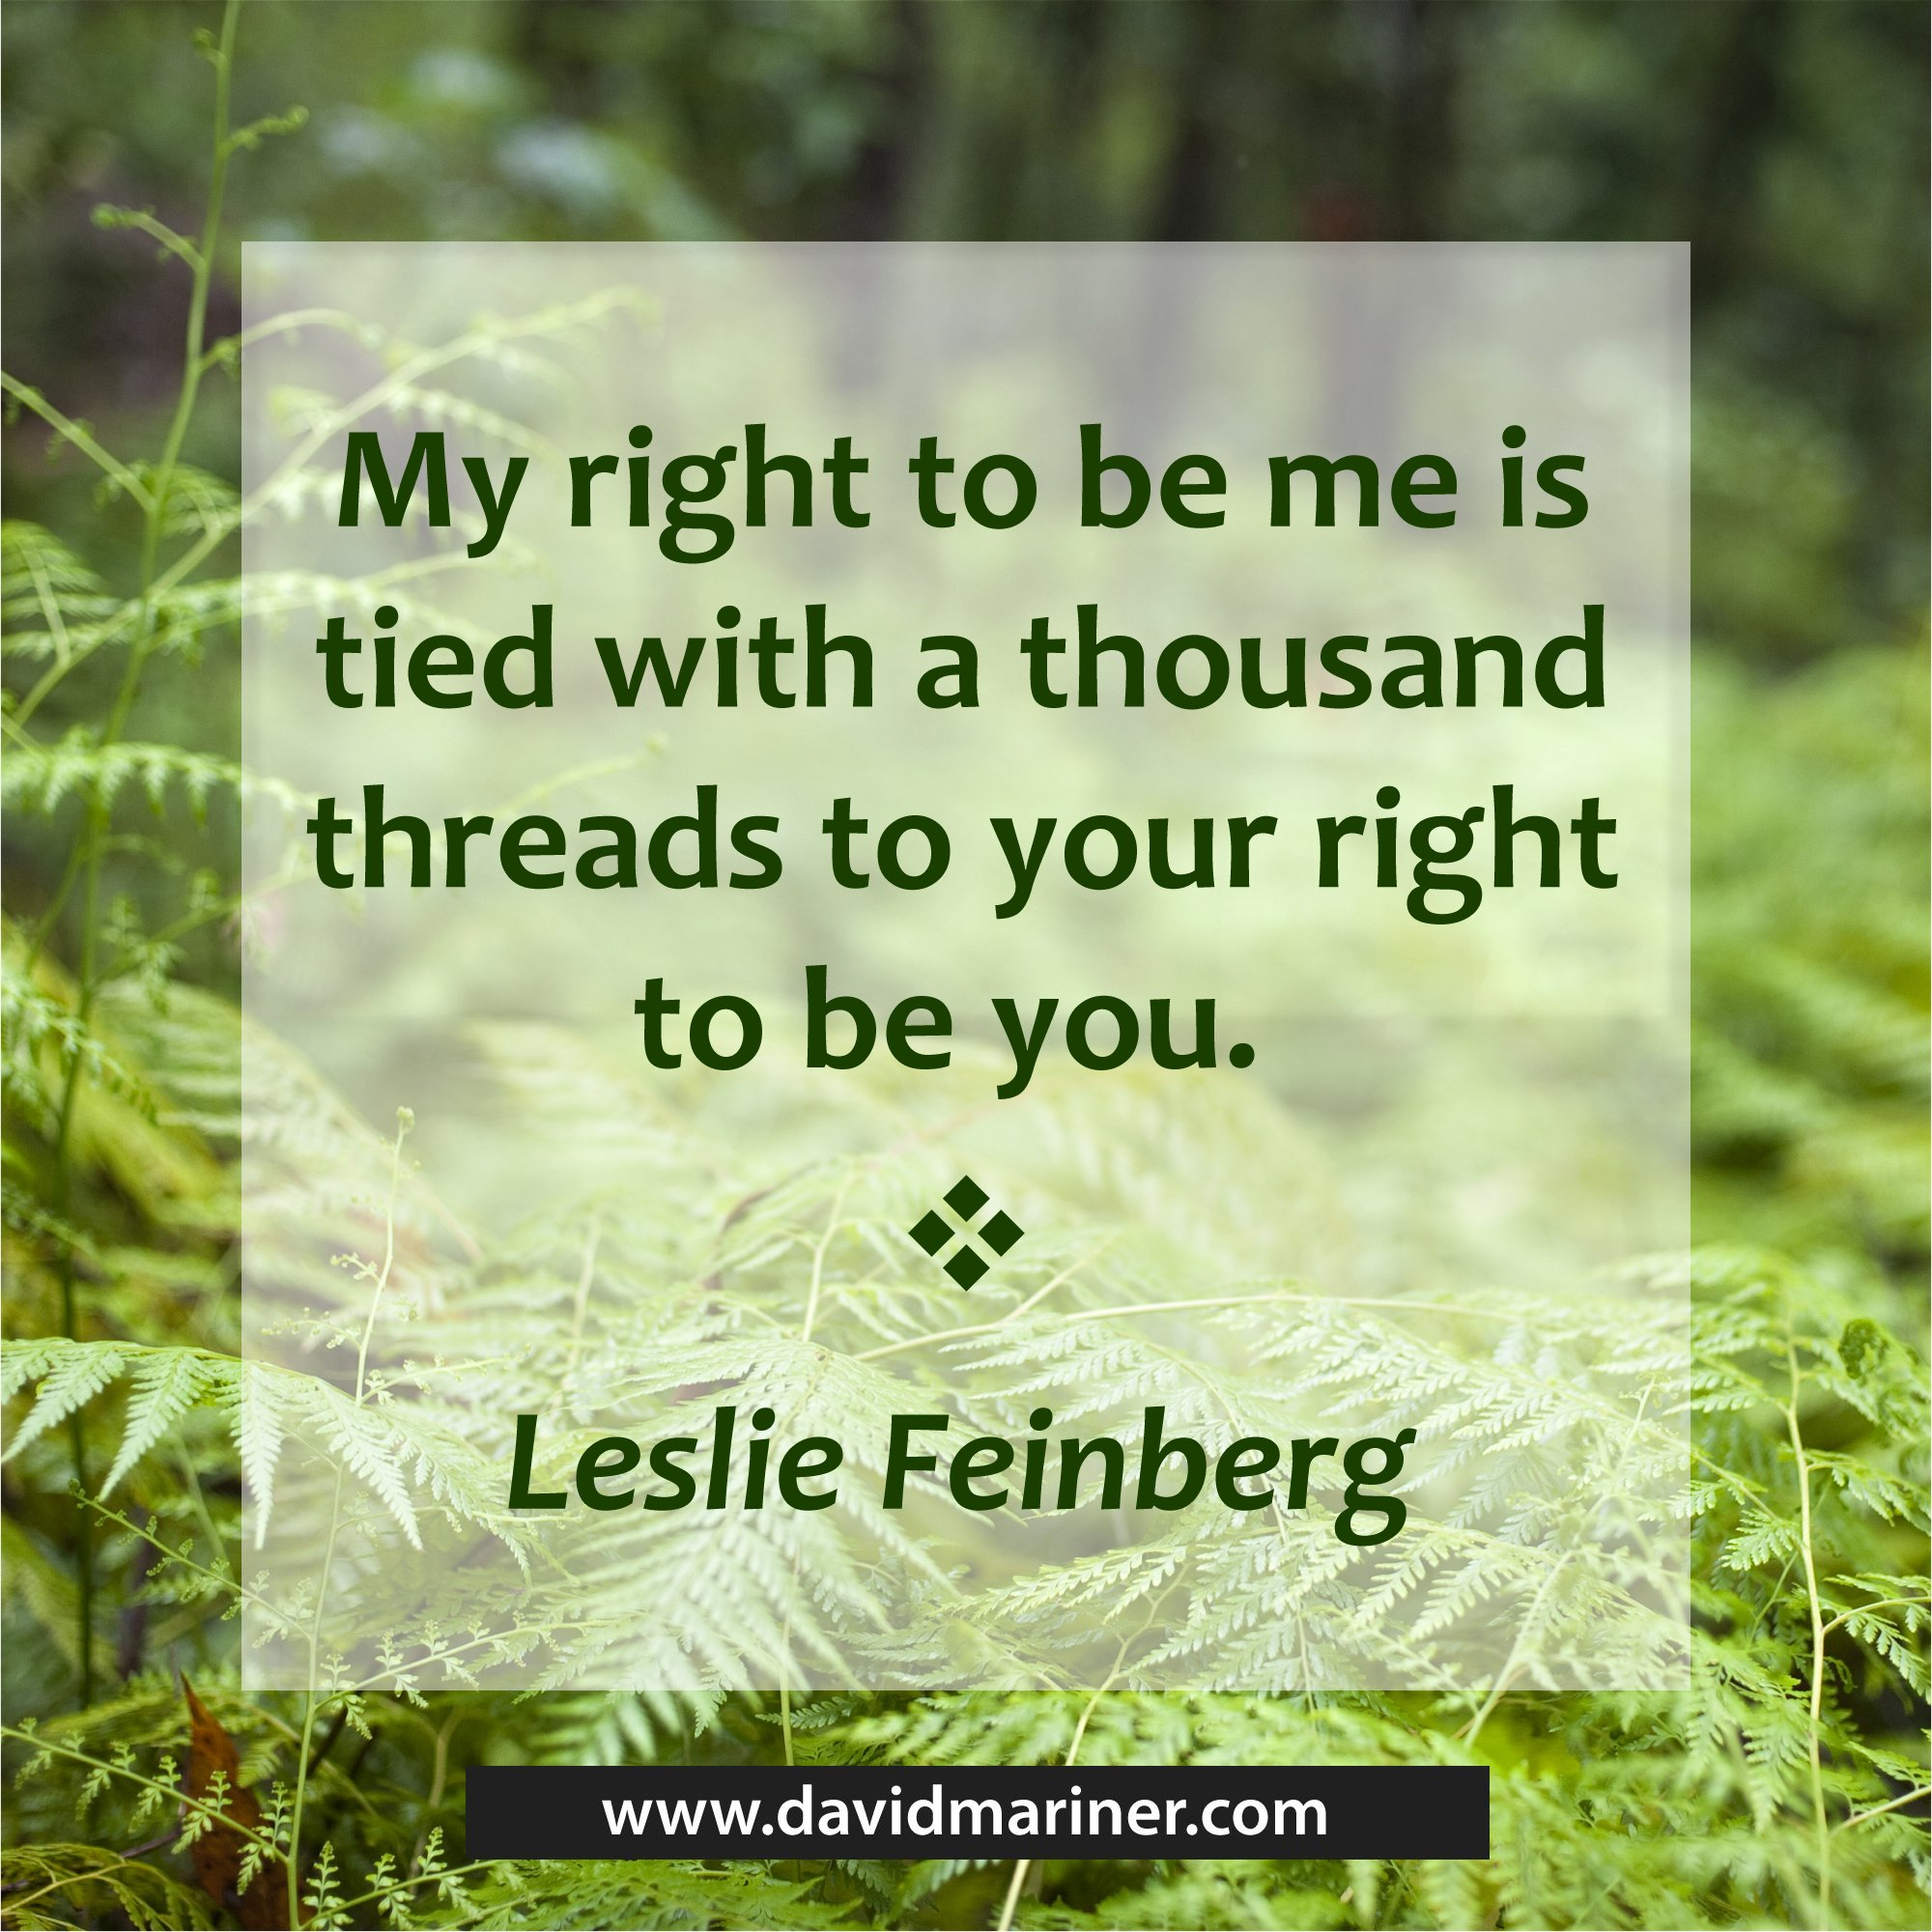 My right to be me is tied with a thousand threads to your right to be you. - Leslie Feinberg